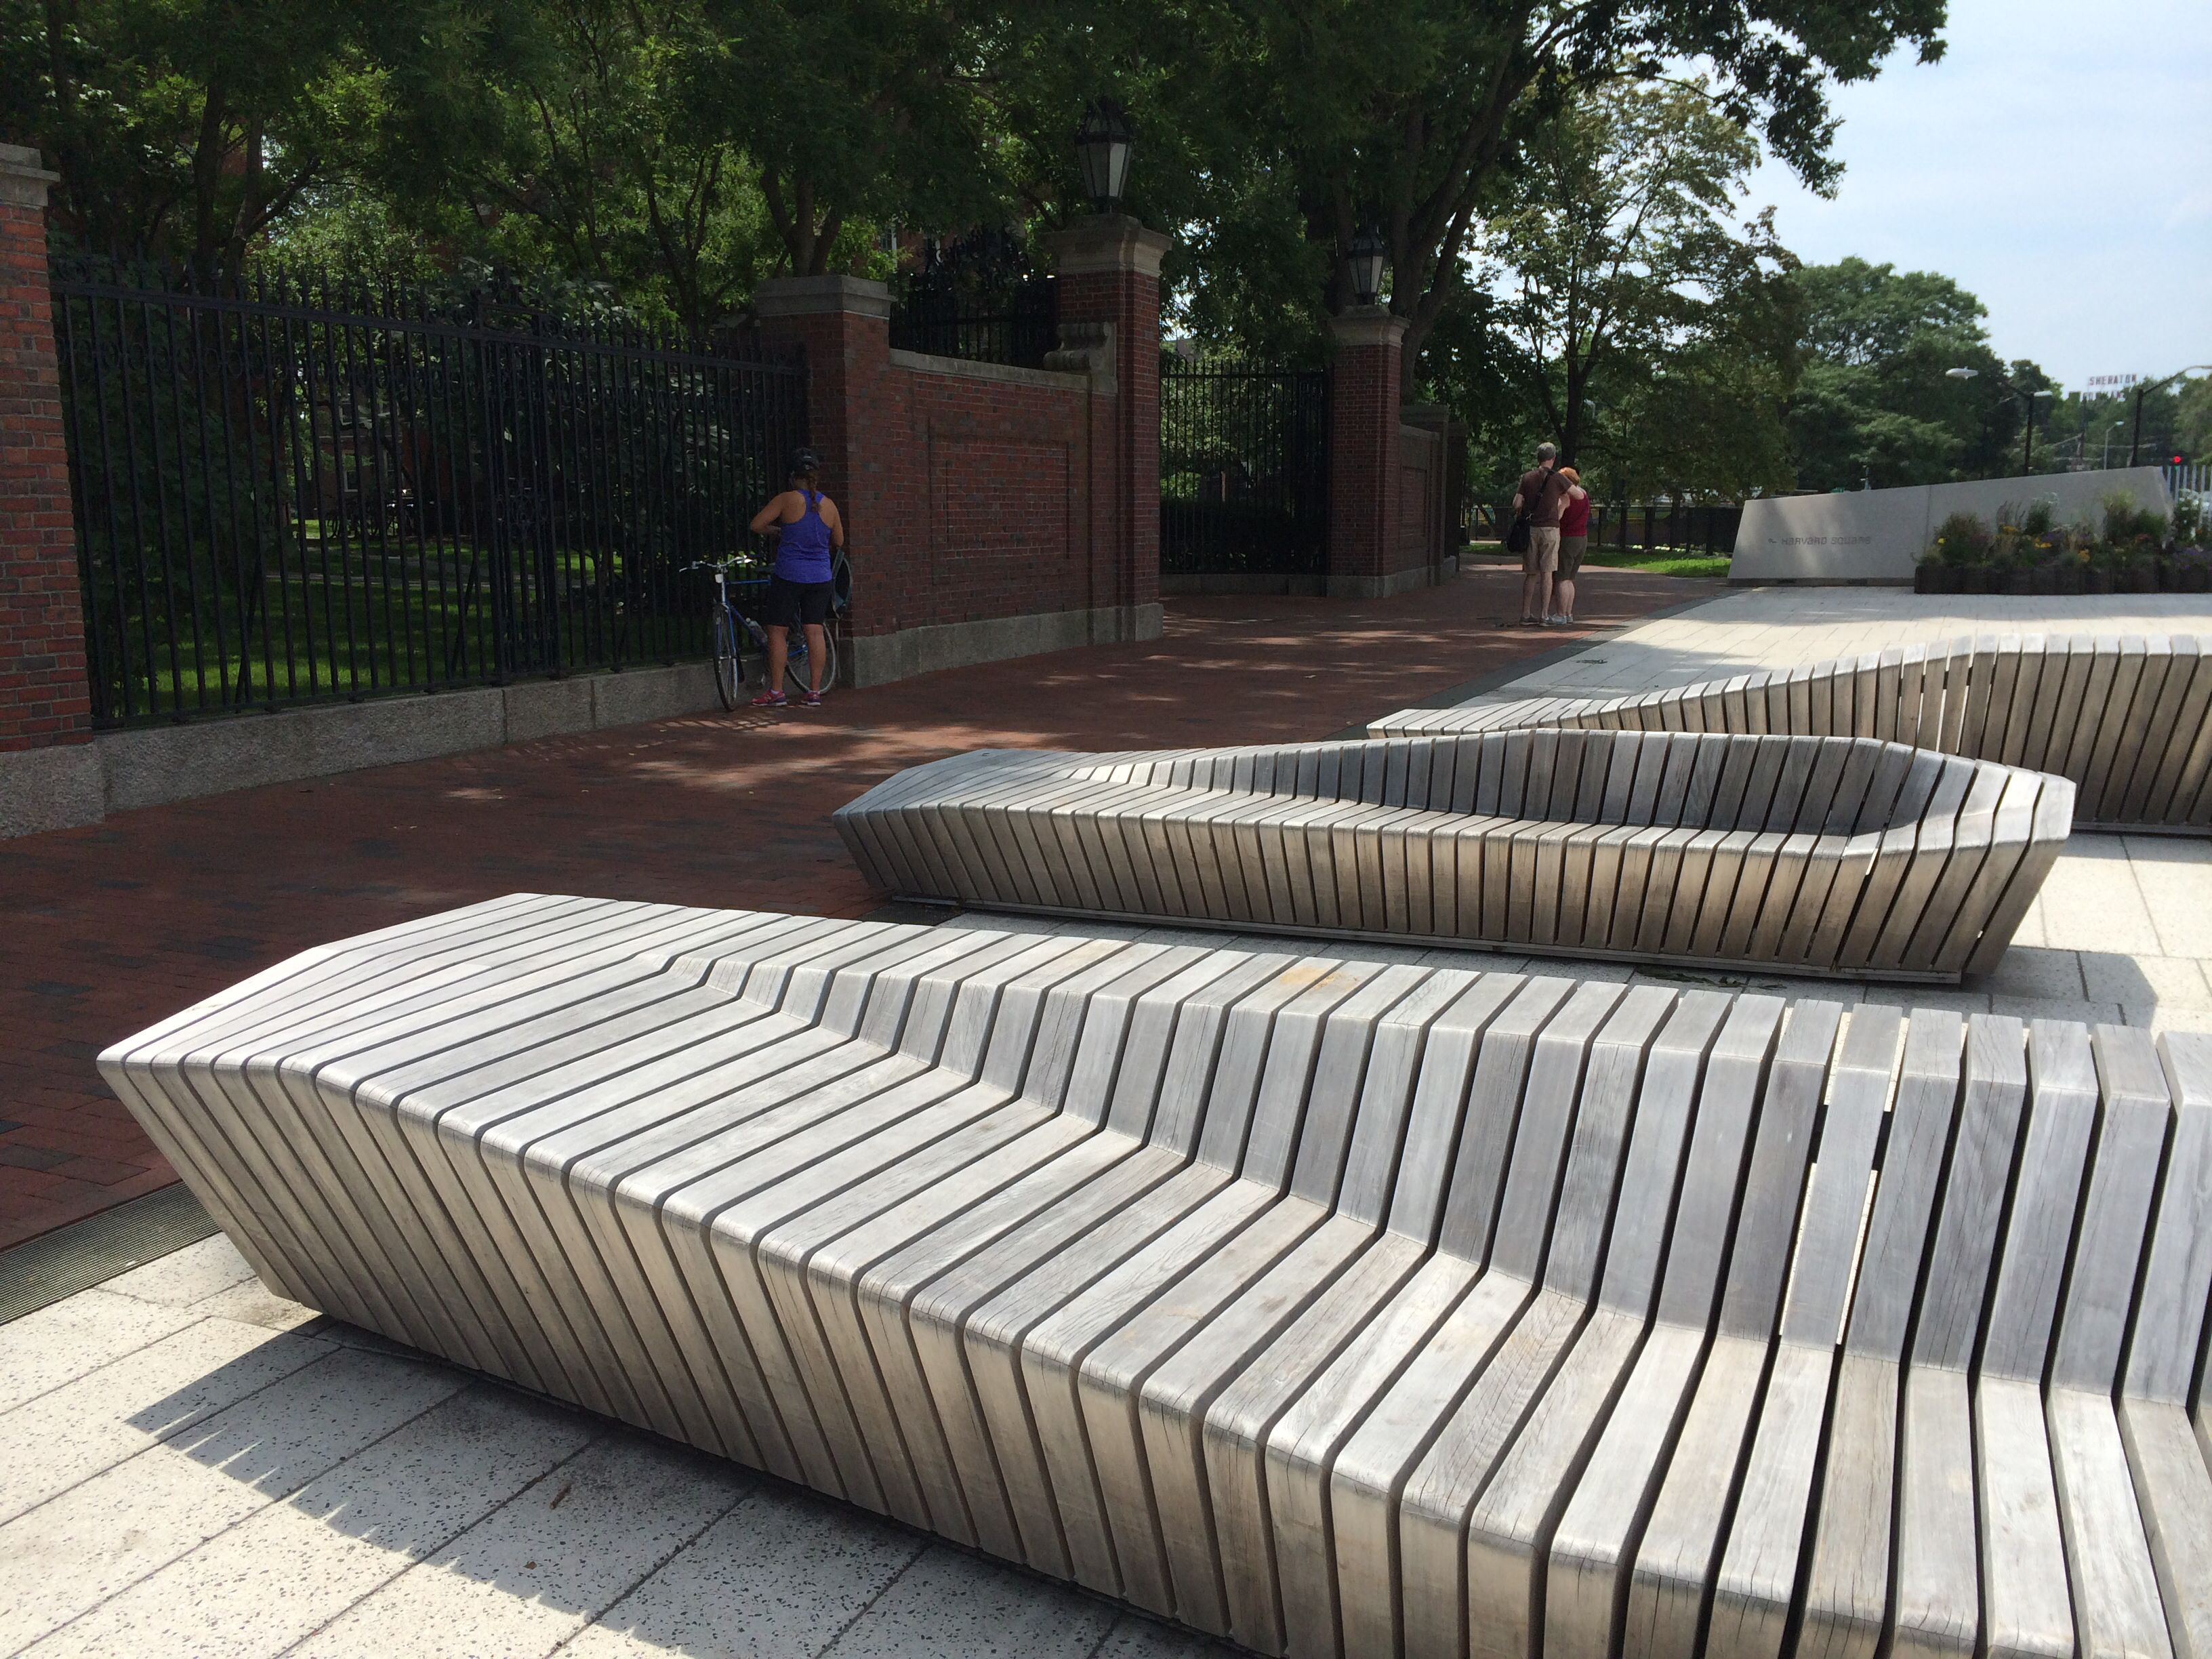 Digital fabrication was used to create these beautiful benches at